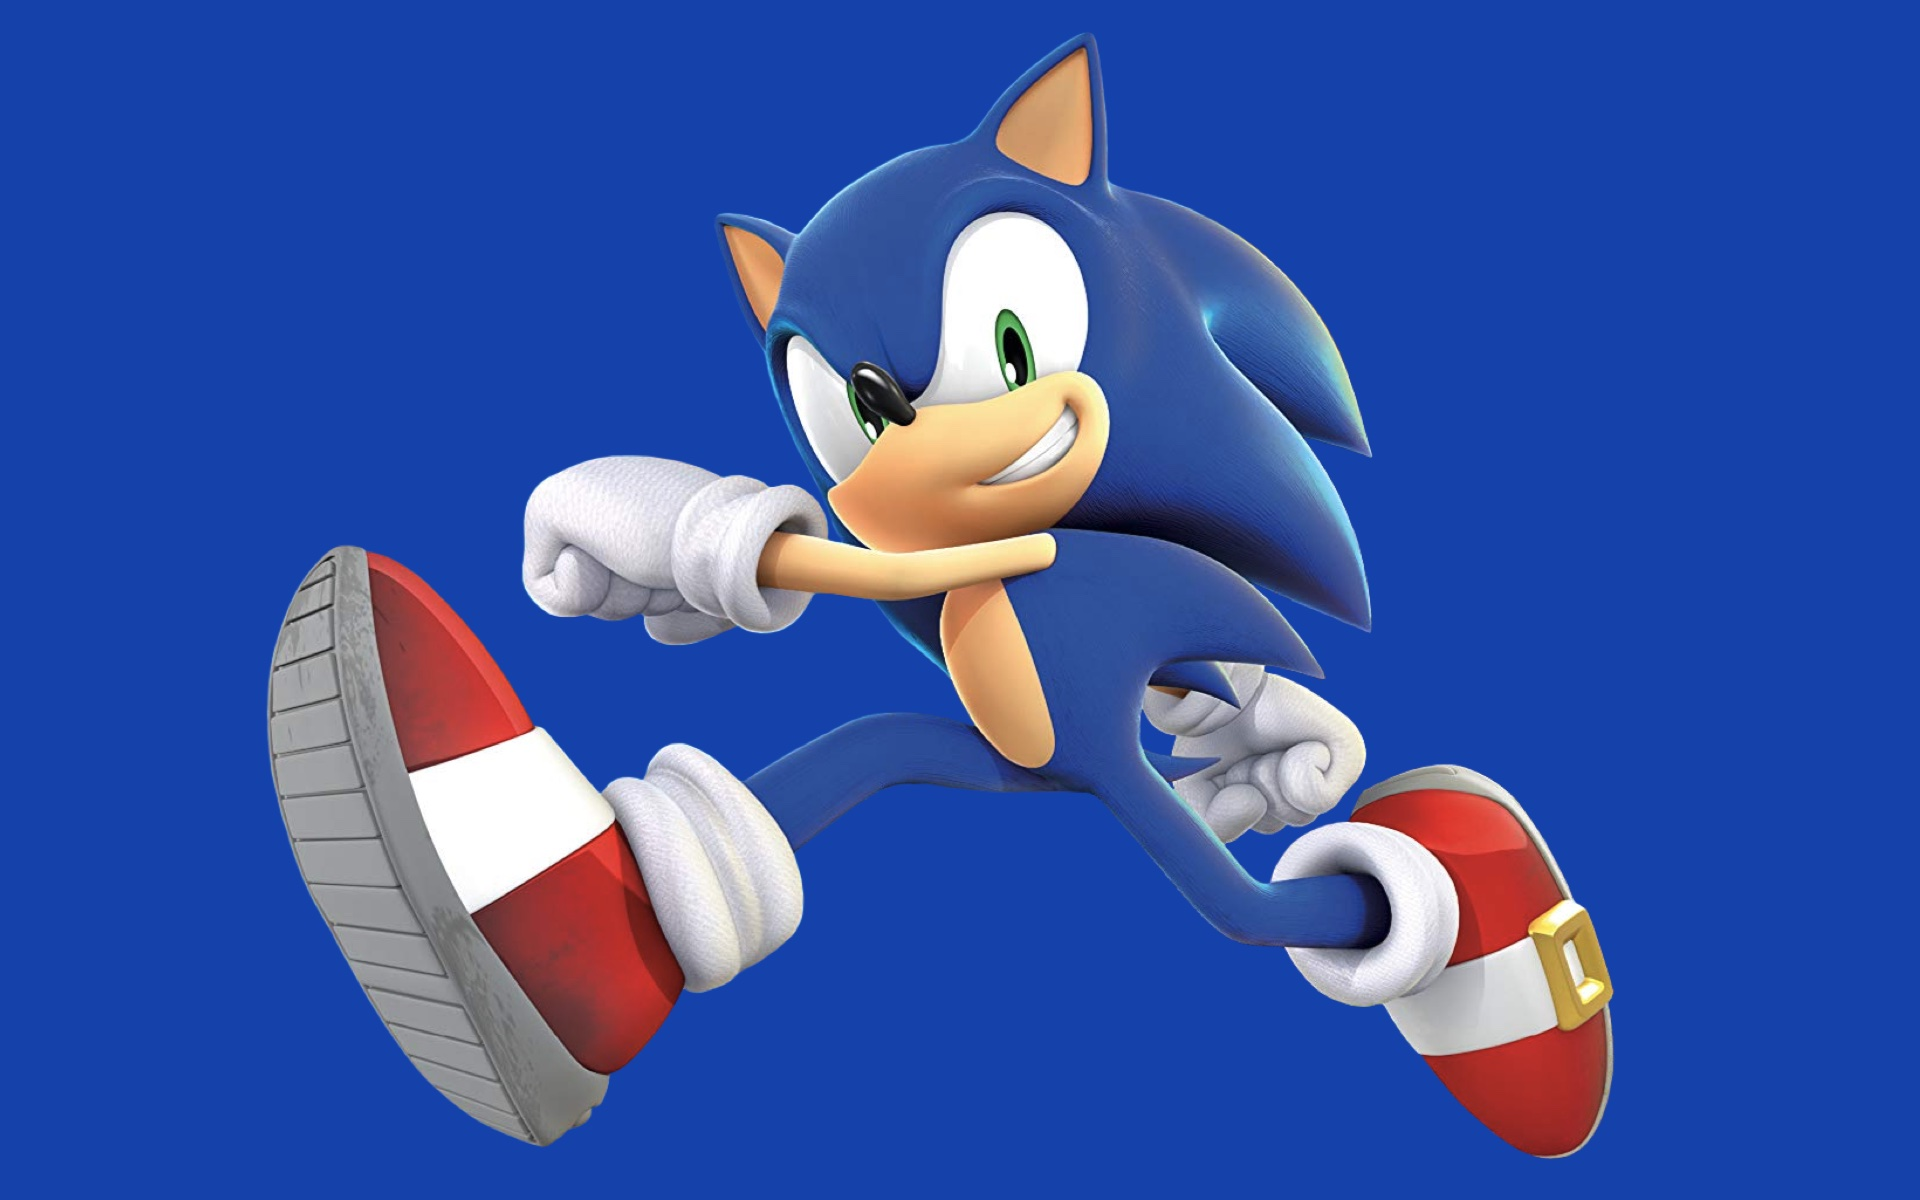 Artwork of Sonic the Hedgehog on a blue background